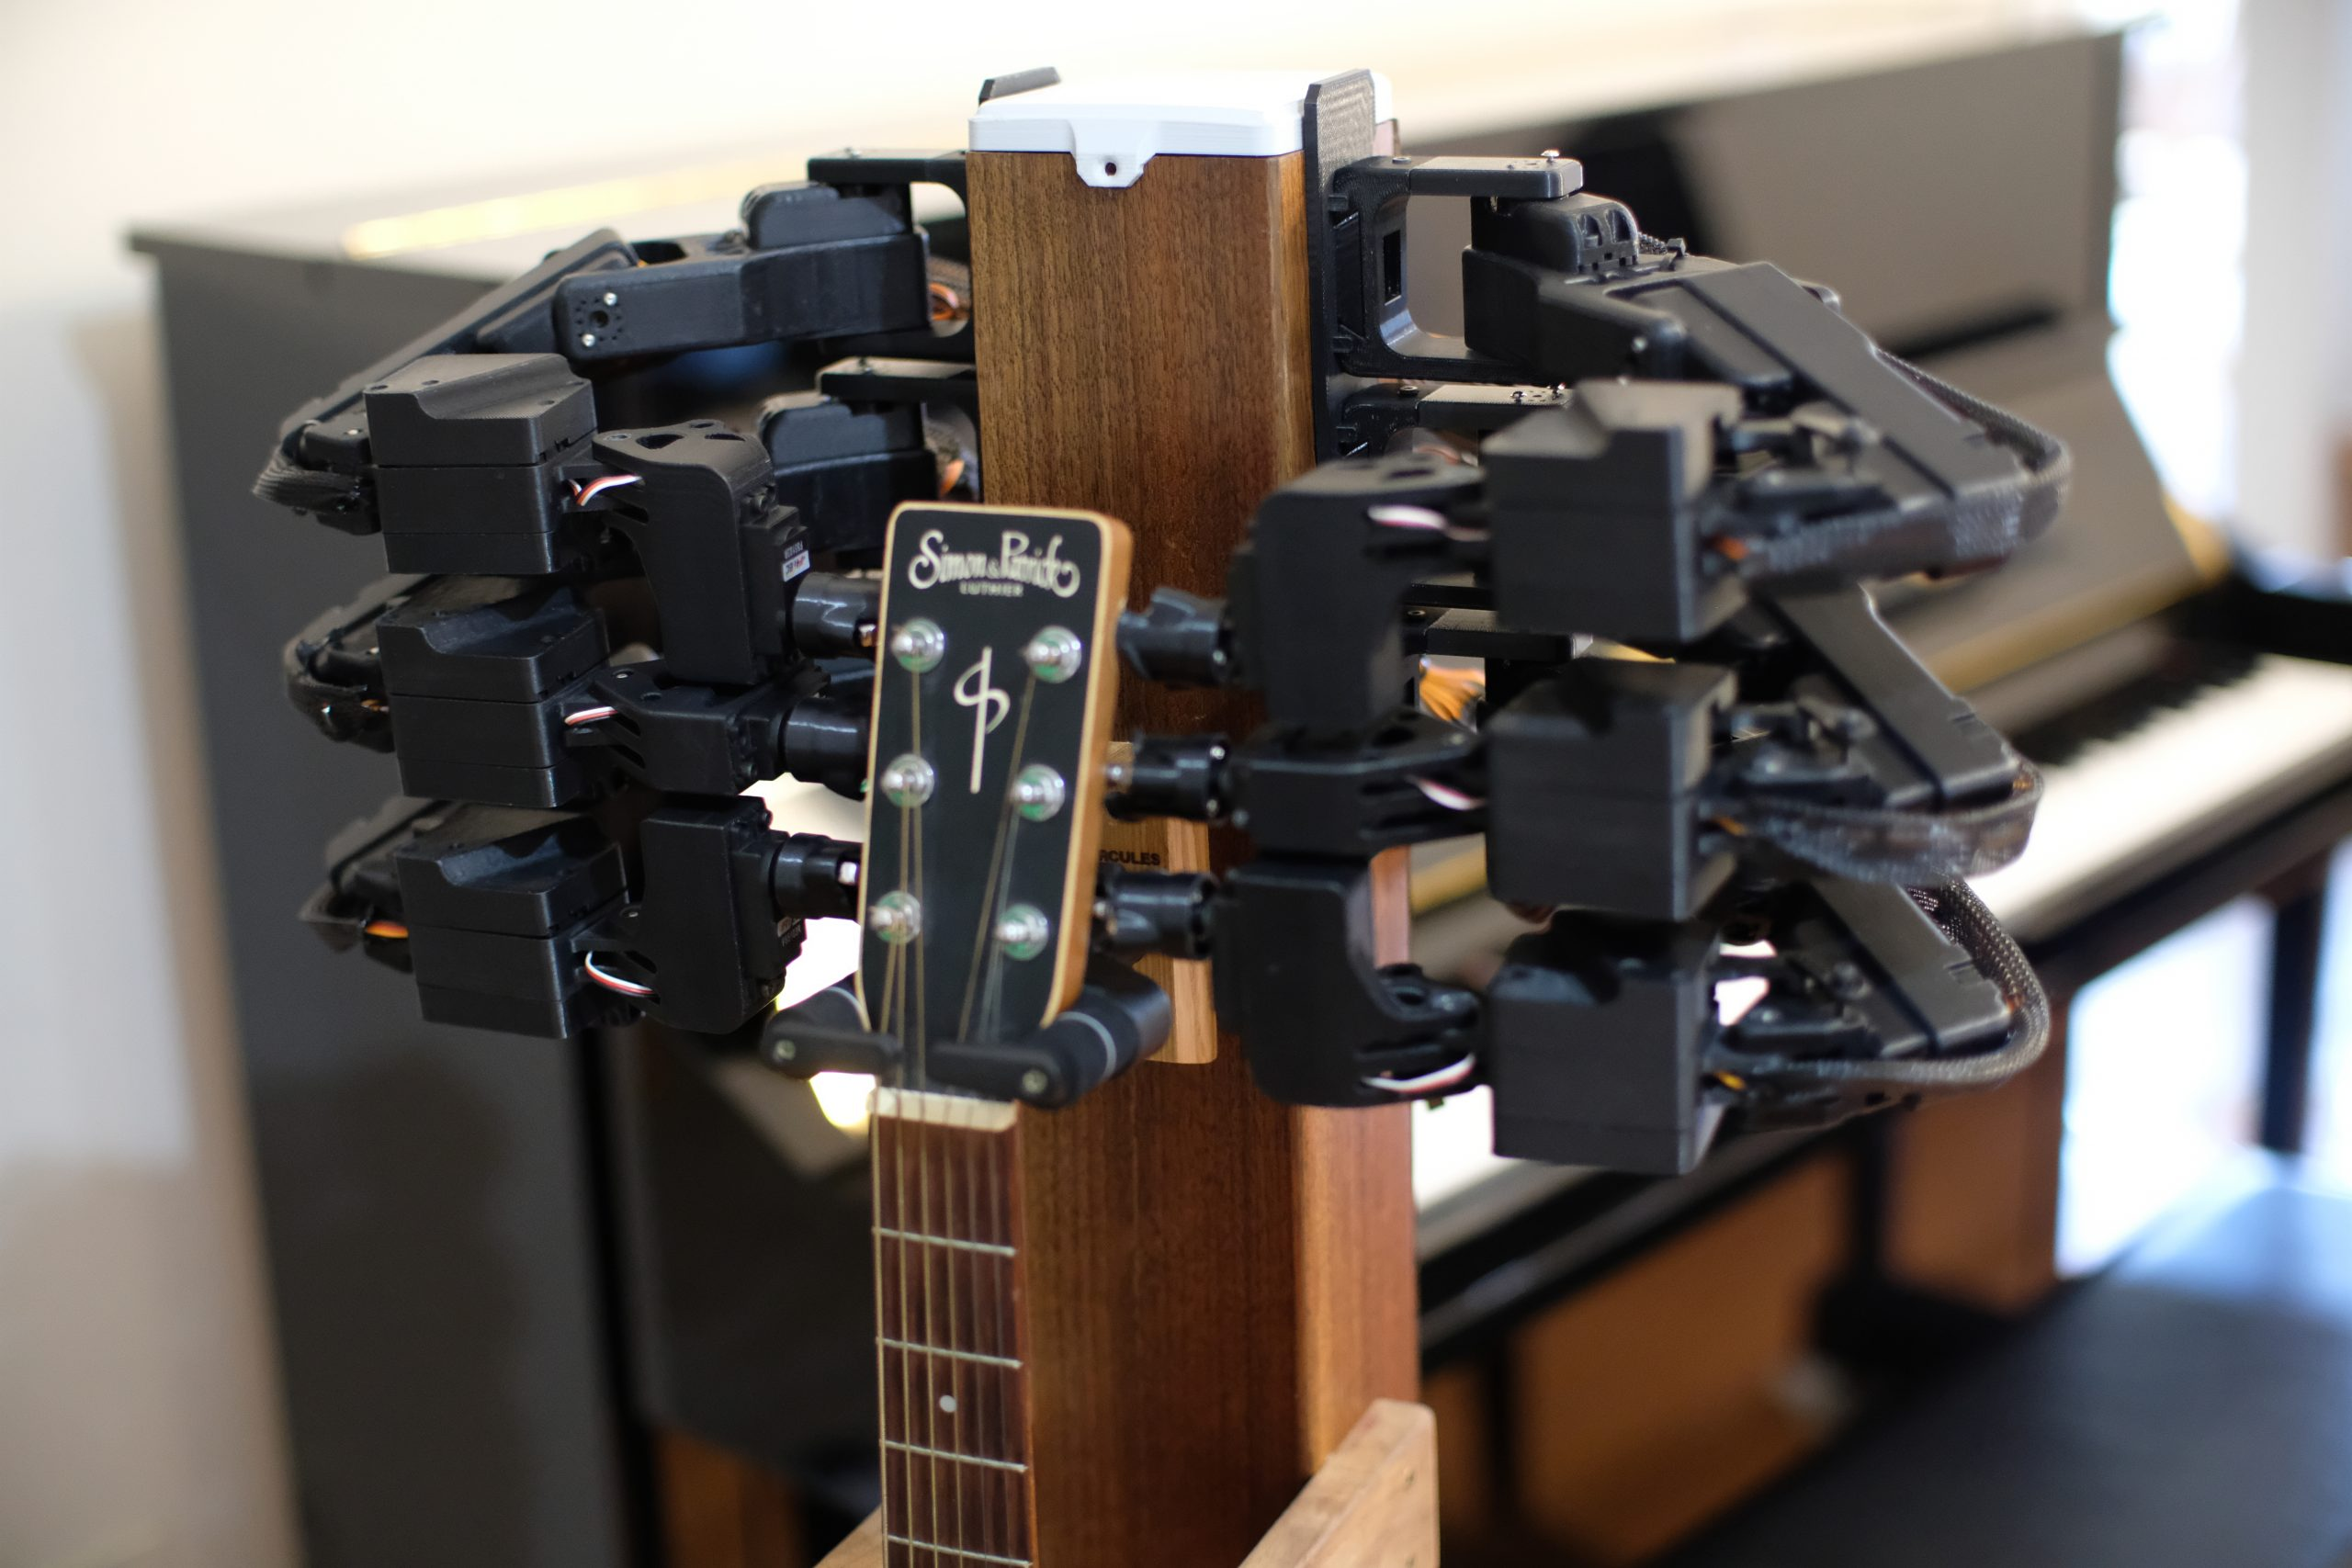 2unify The Stand hands-free robotic guitar tuning device